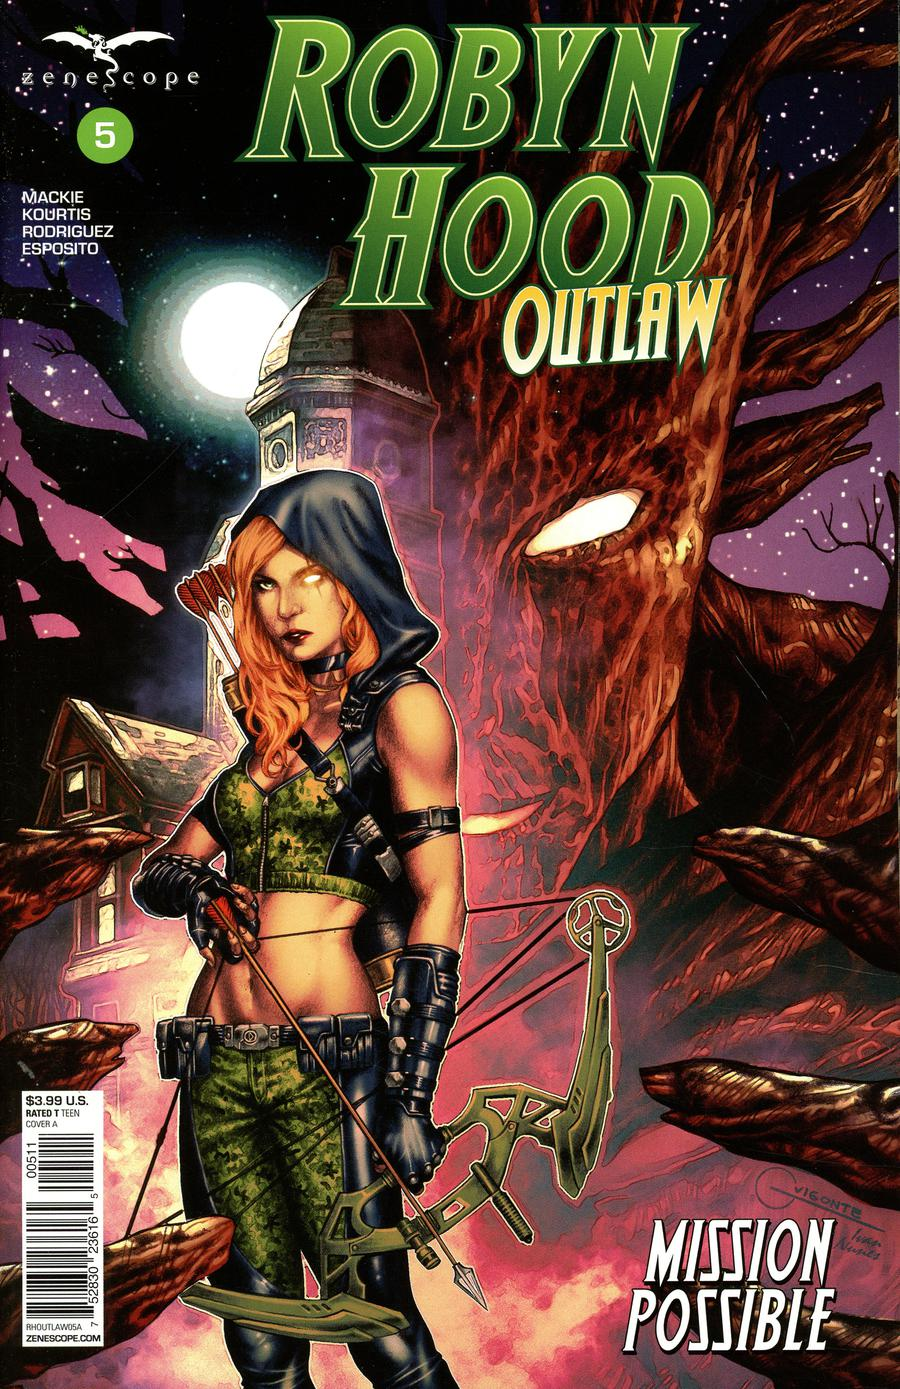 Grimm Fairy Tales Presents Robyn Hood Outlaw #5 Cover A Geebo Vigonte